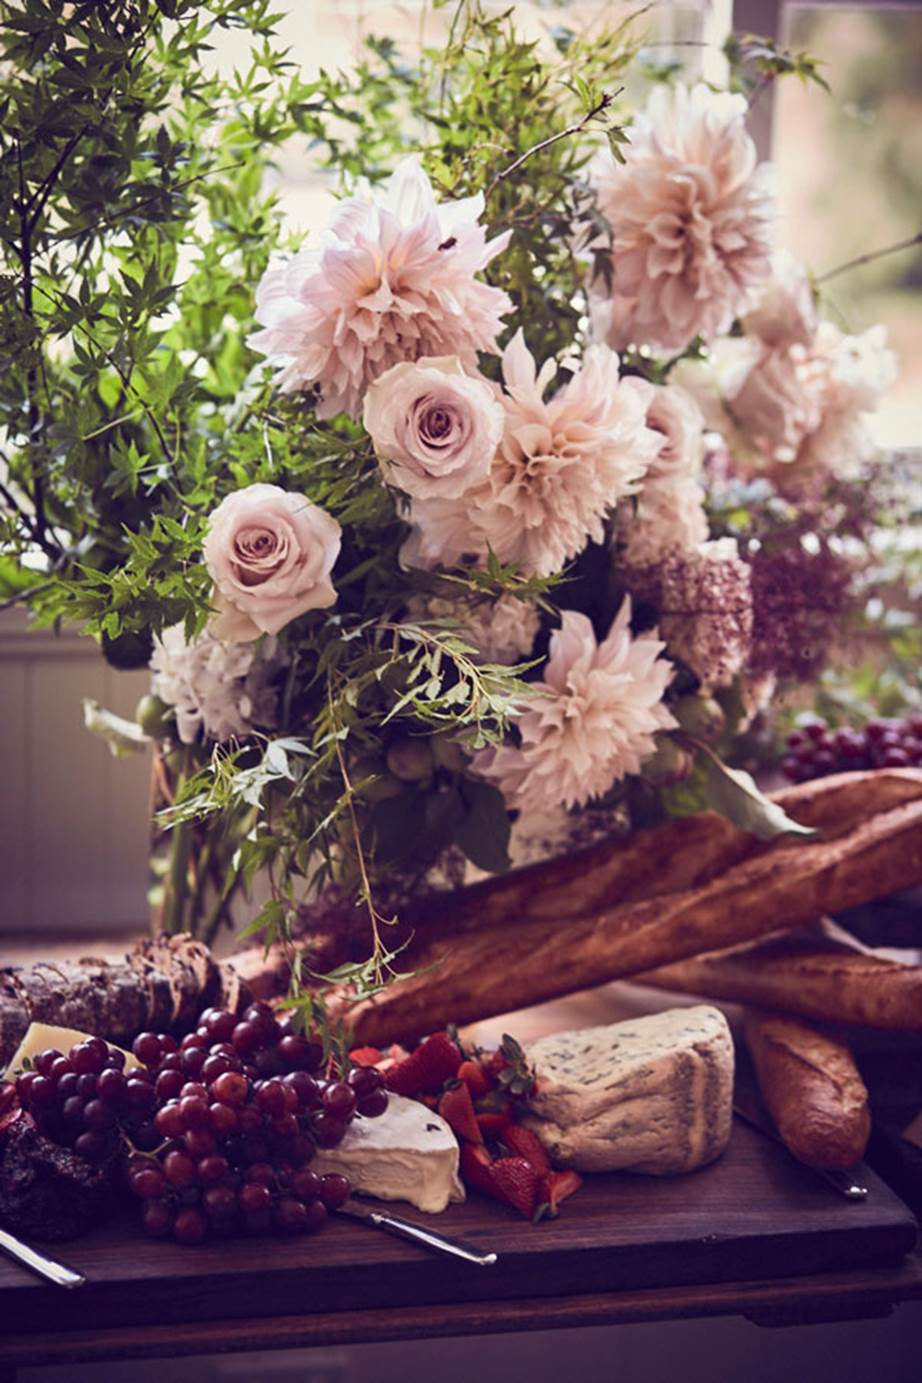 Hopewood House - Weddings  - Harpers Bazaar - Woodland Wedding in the Souther Highlands - Alyssa and Adriano - Botanicals and grapes.jpg